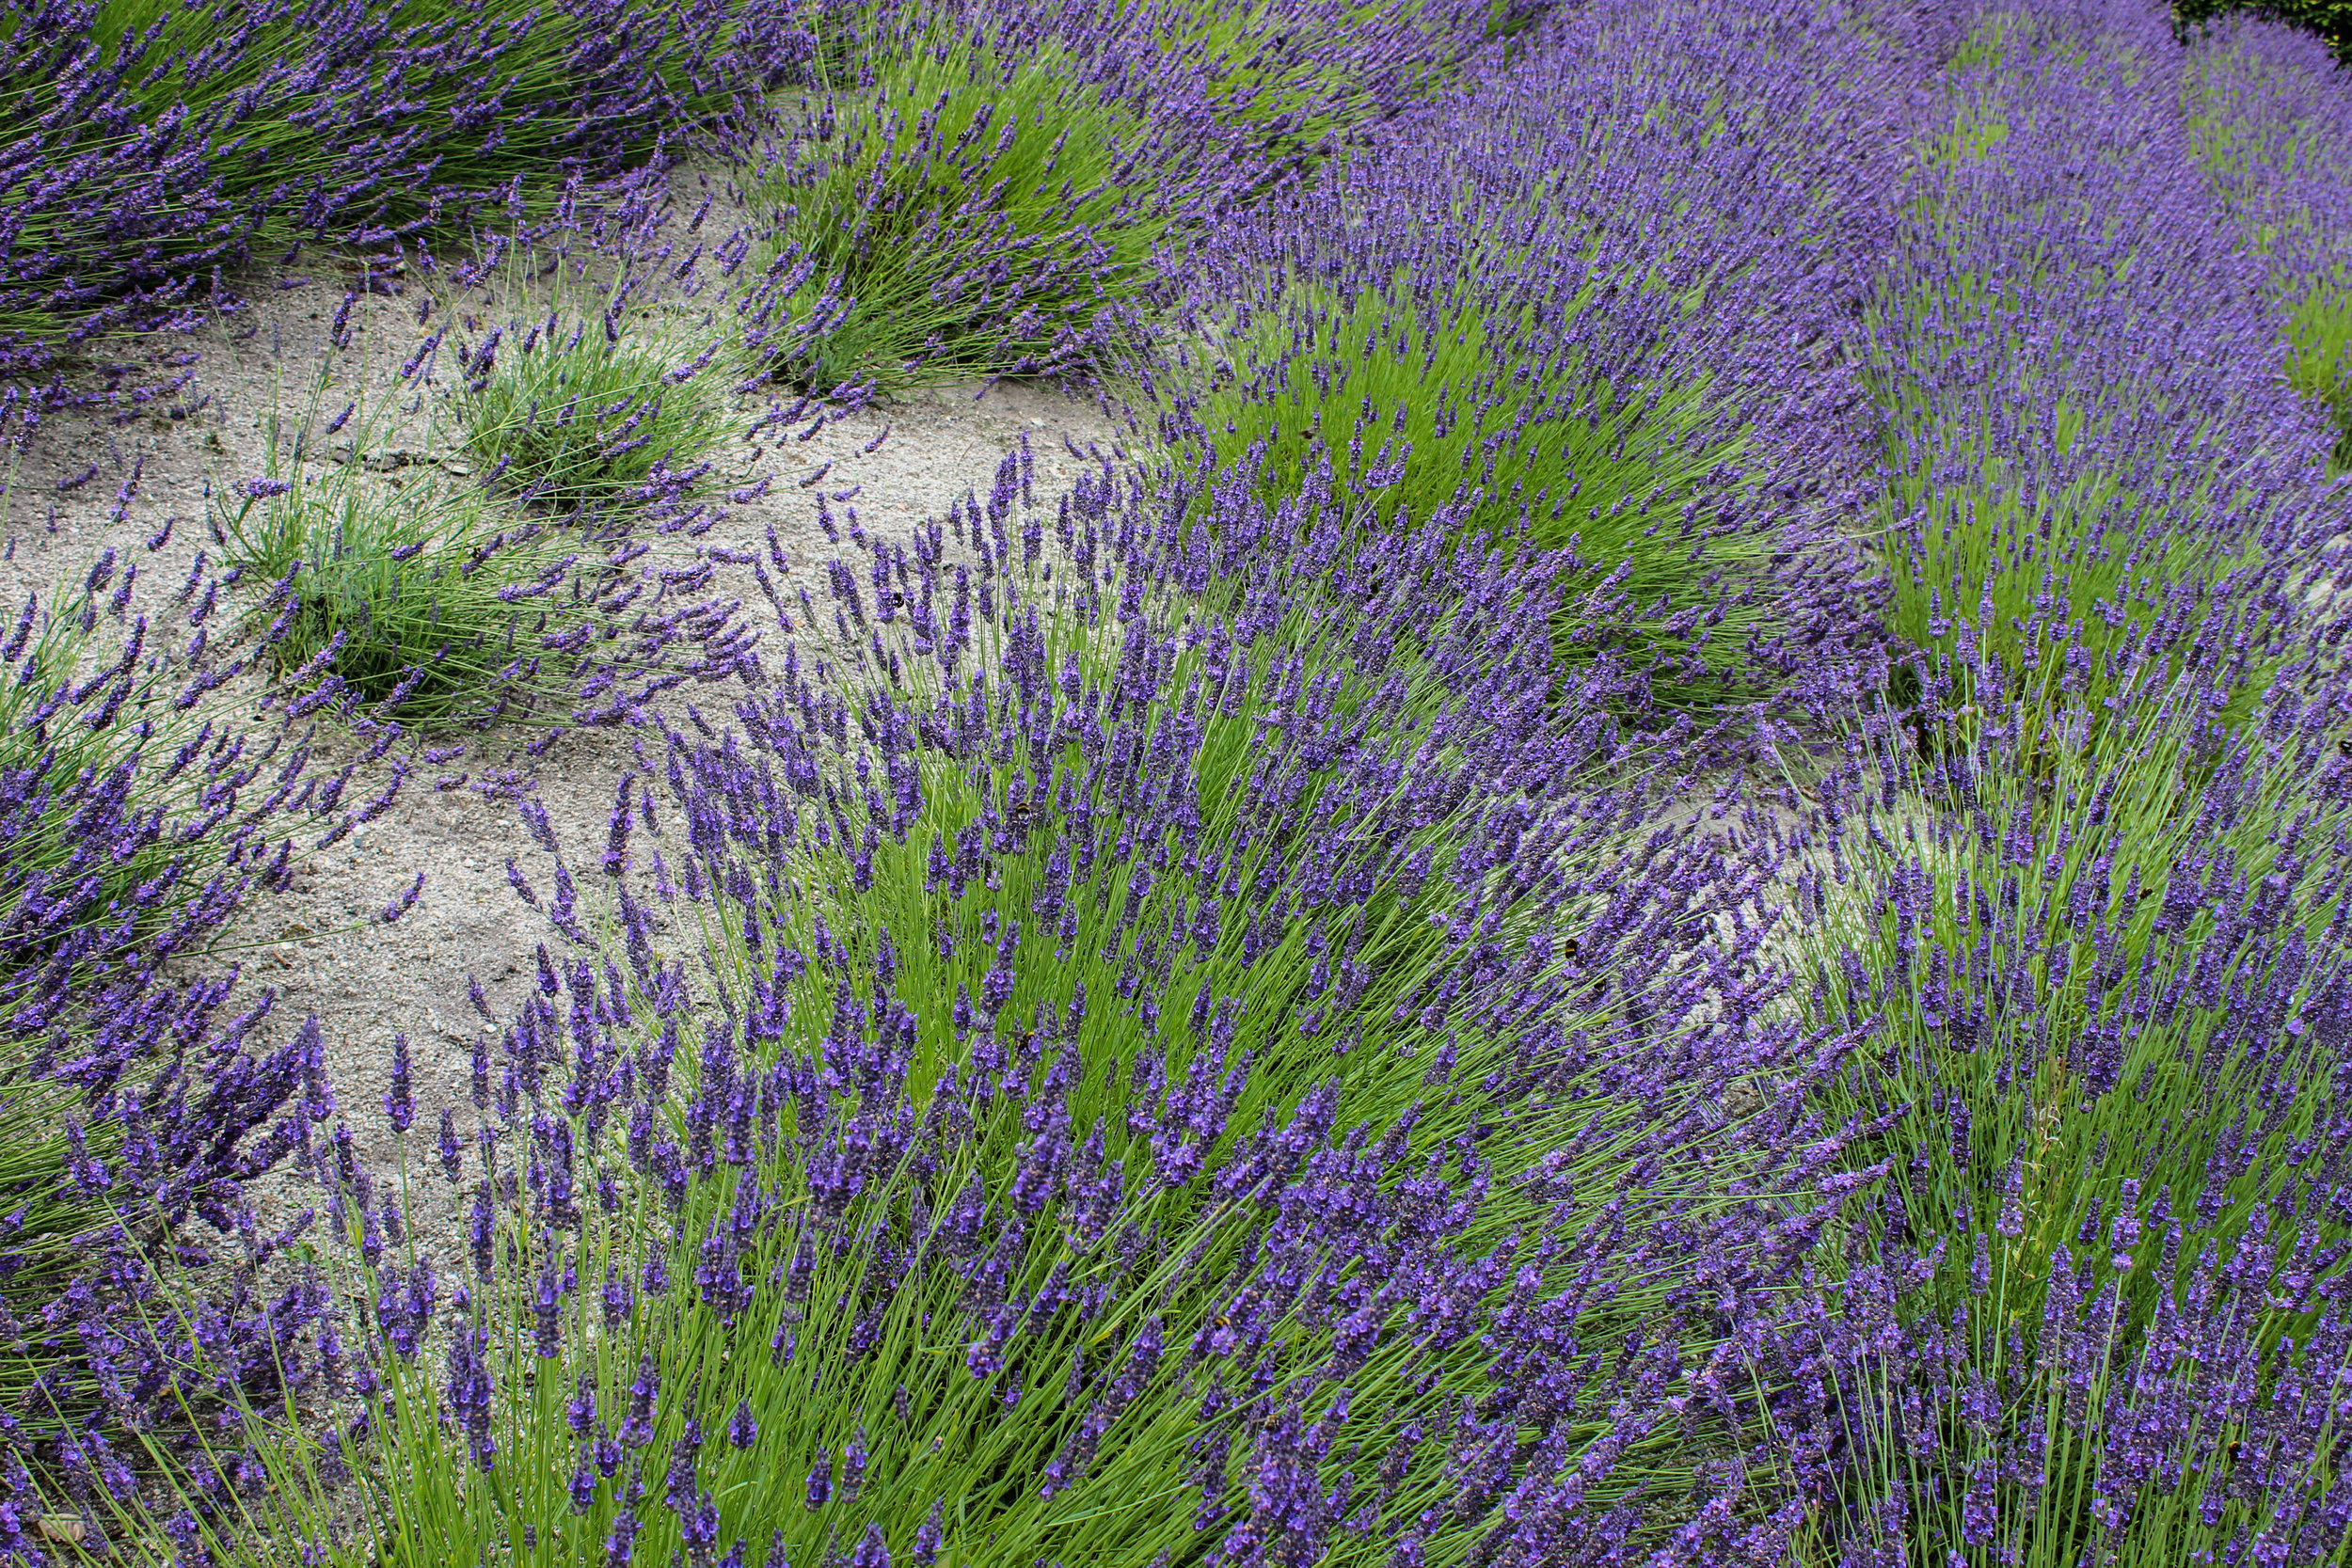 Lavendula angustifolia (Lavender) A photograph of a stretch of Lavender in bloom